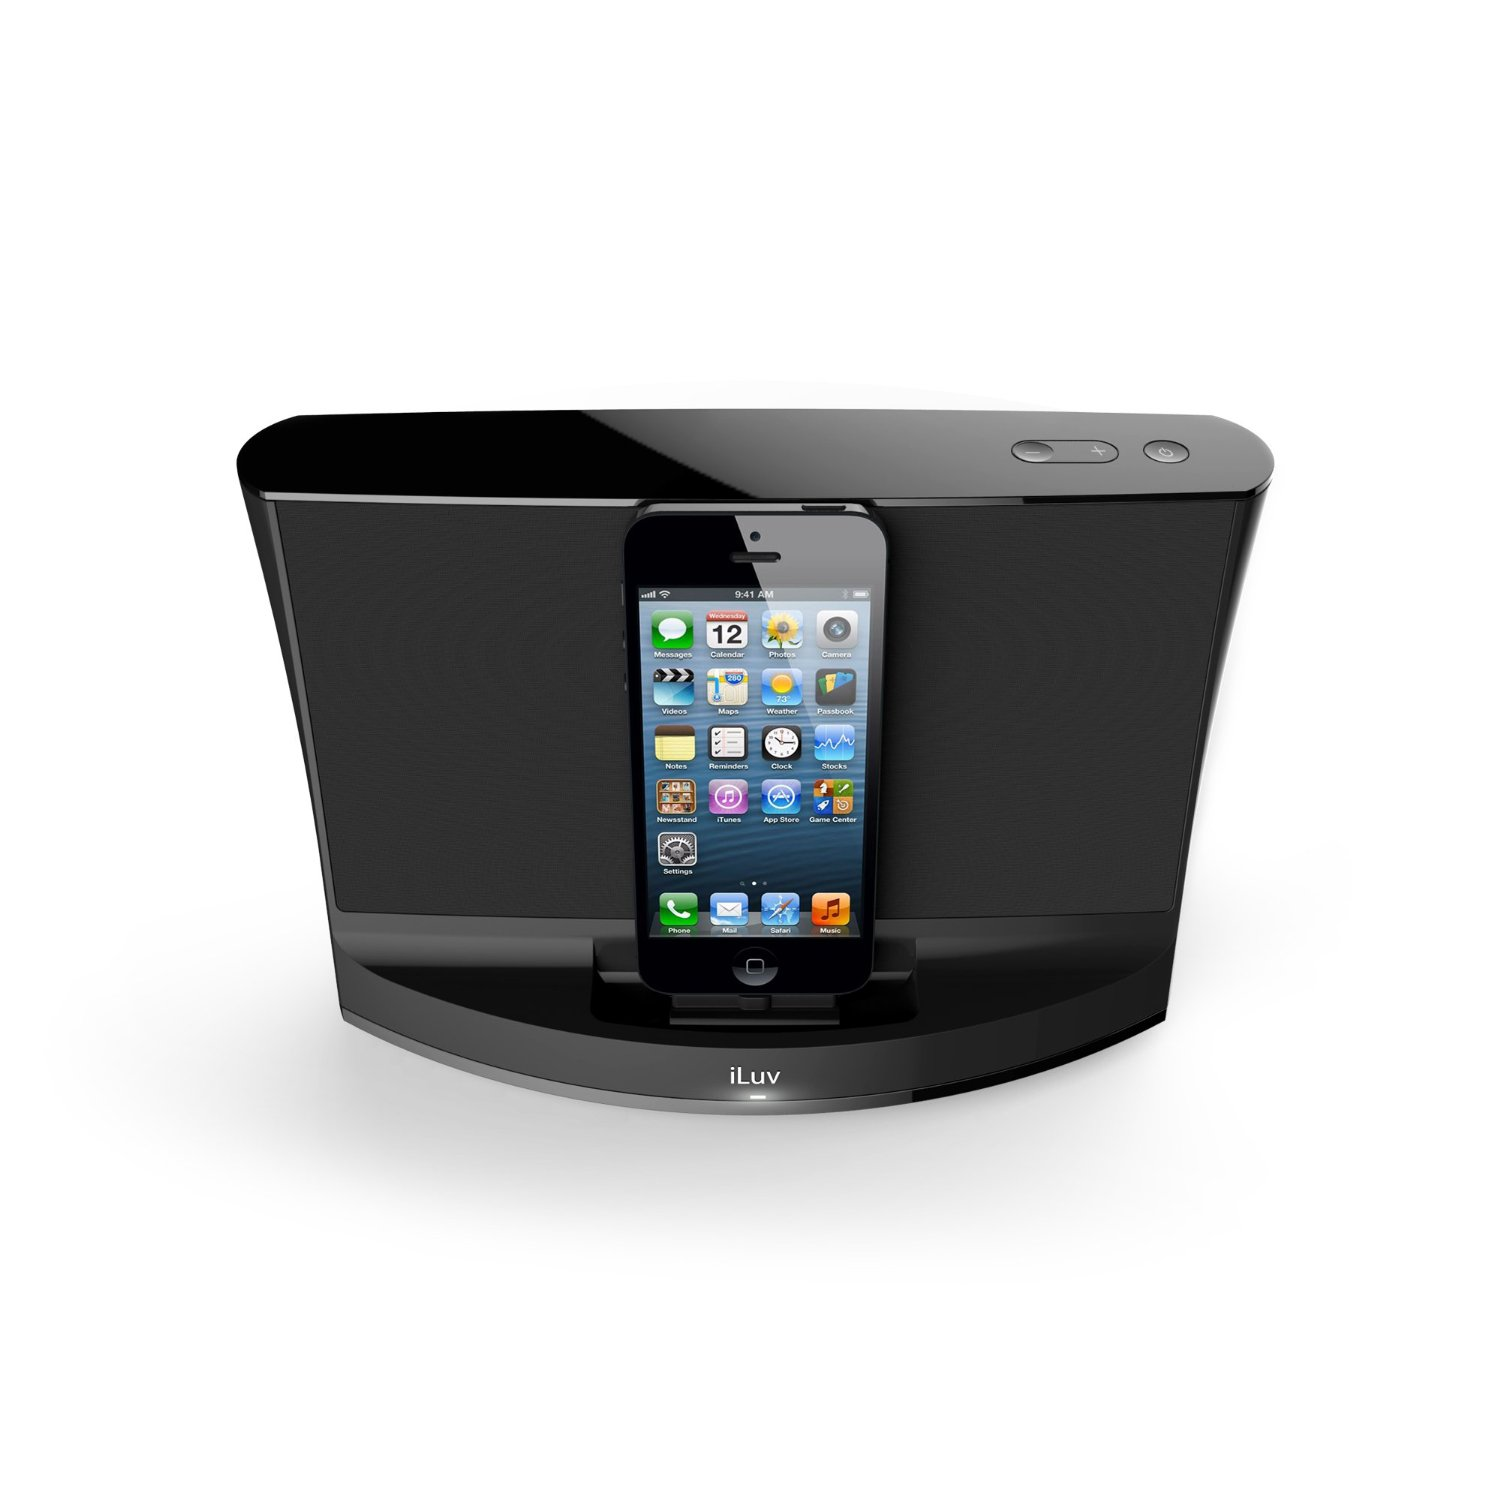 iluv aud 3 9w speaker lightning docking station for iphone 5 5s 6 with aux in ebay. Black Bedroom Furniture Sets. Home Design Ideas